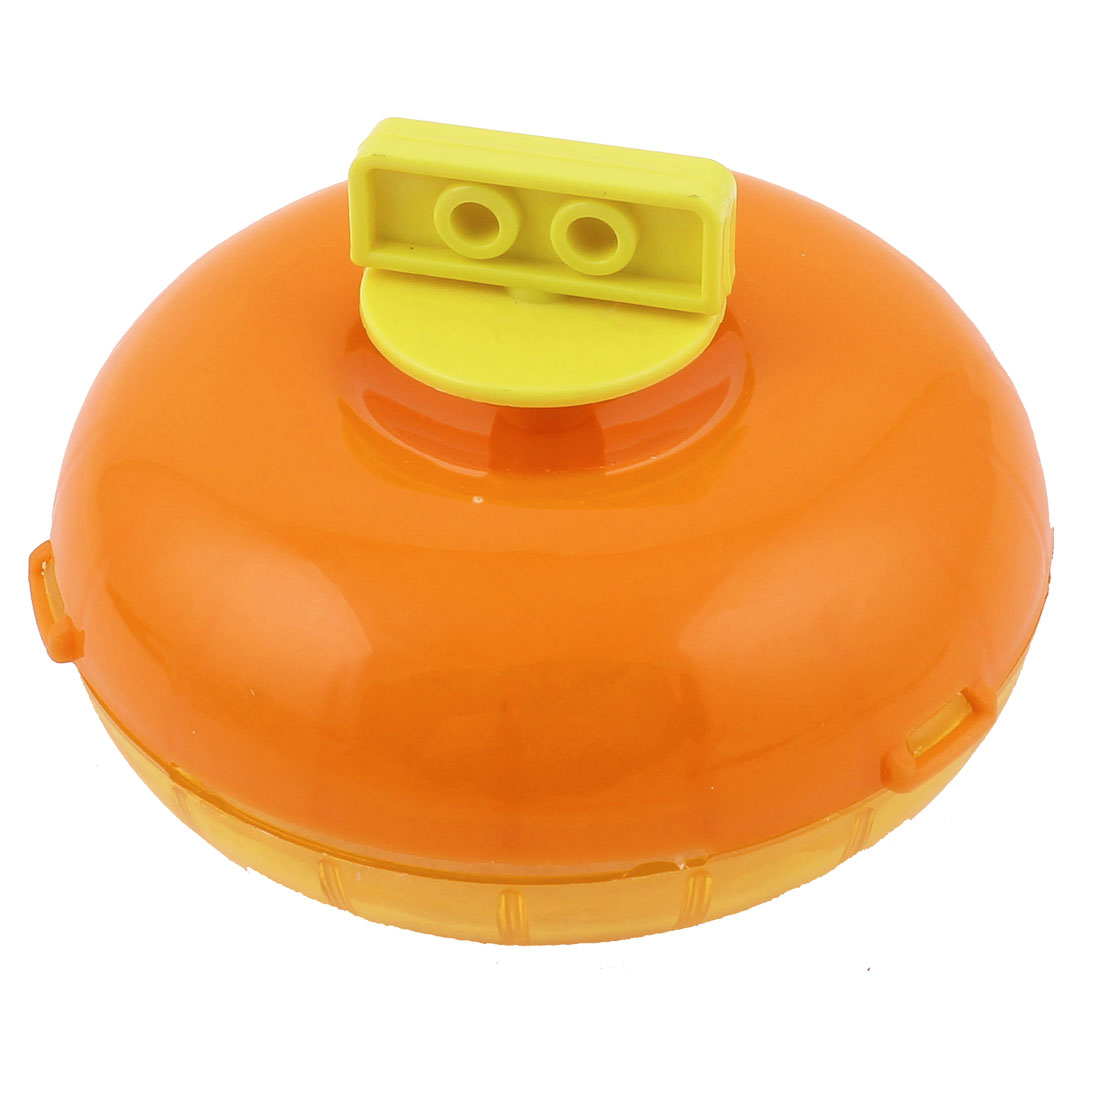 Orange Plastic Flying Disc Trainning Puppy Flyer Throwing Fetch Catcher Dog Pet Frisbee Toy